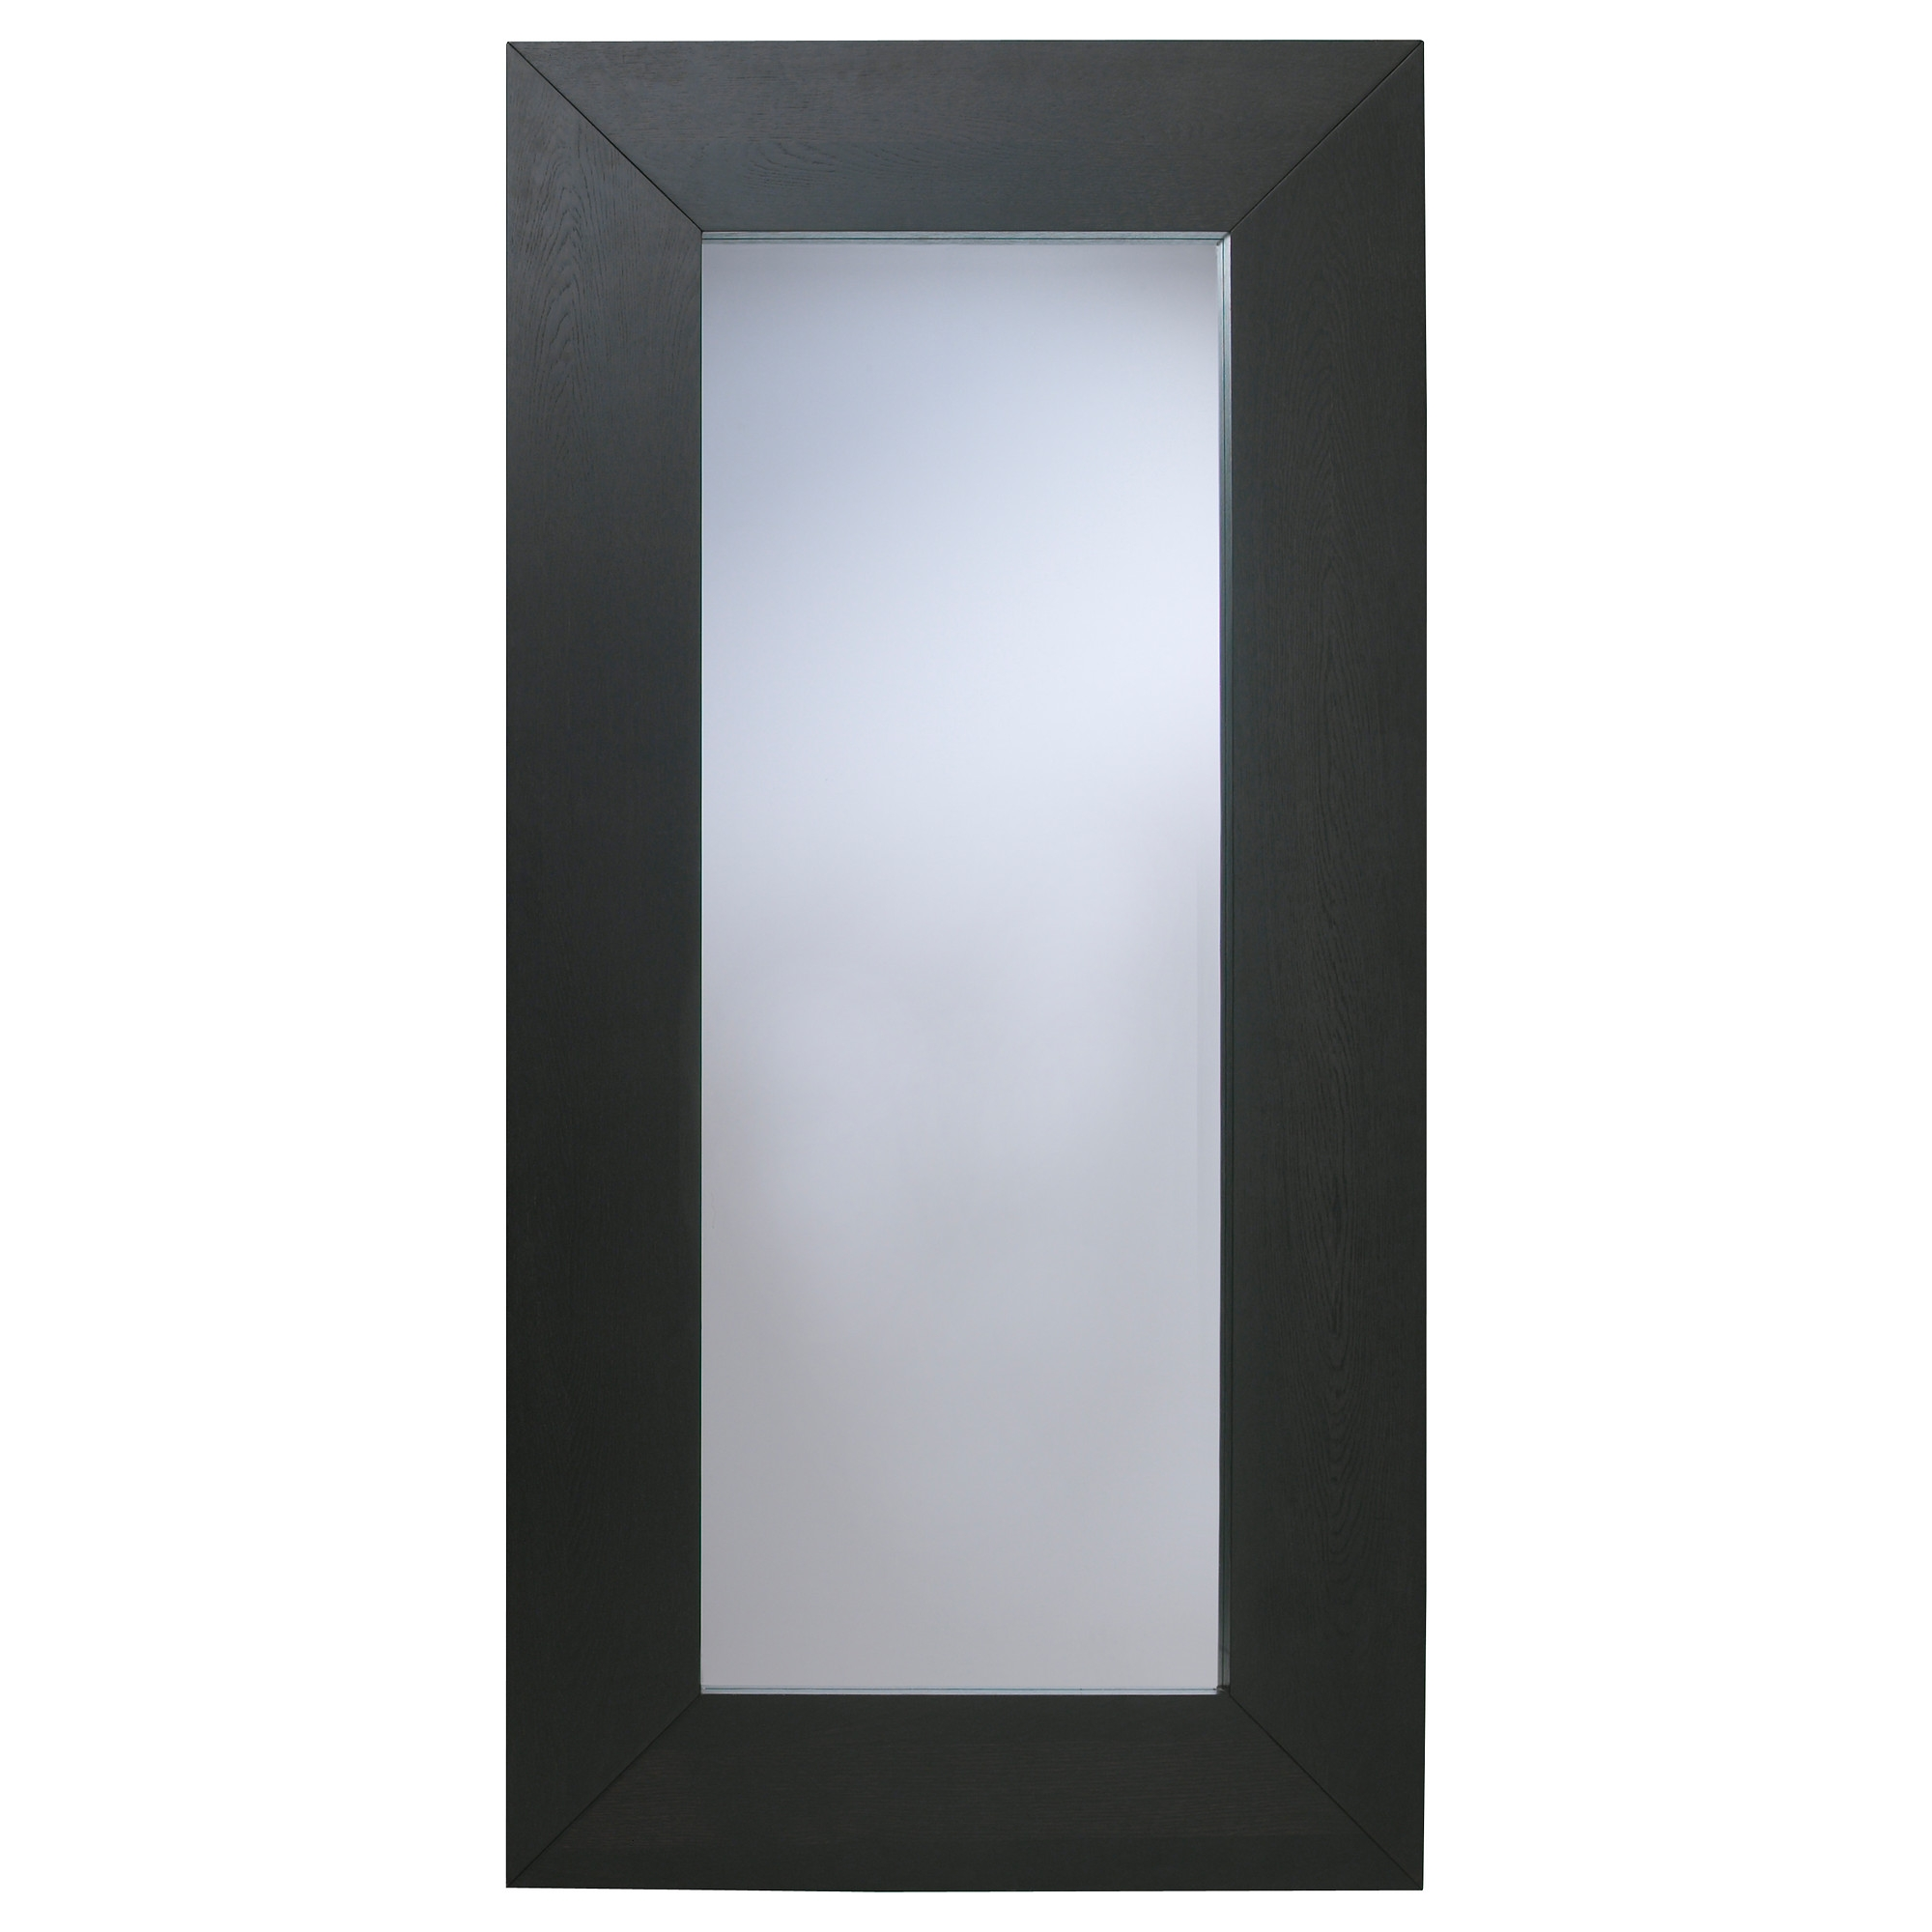 Full Length Mirrors Ikea Throughout Large Black Mirrors (Image 12 of 15)